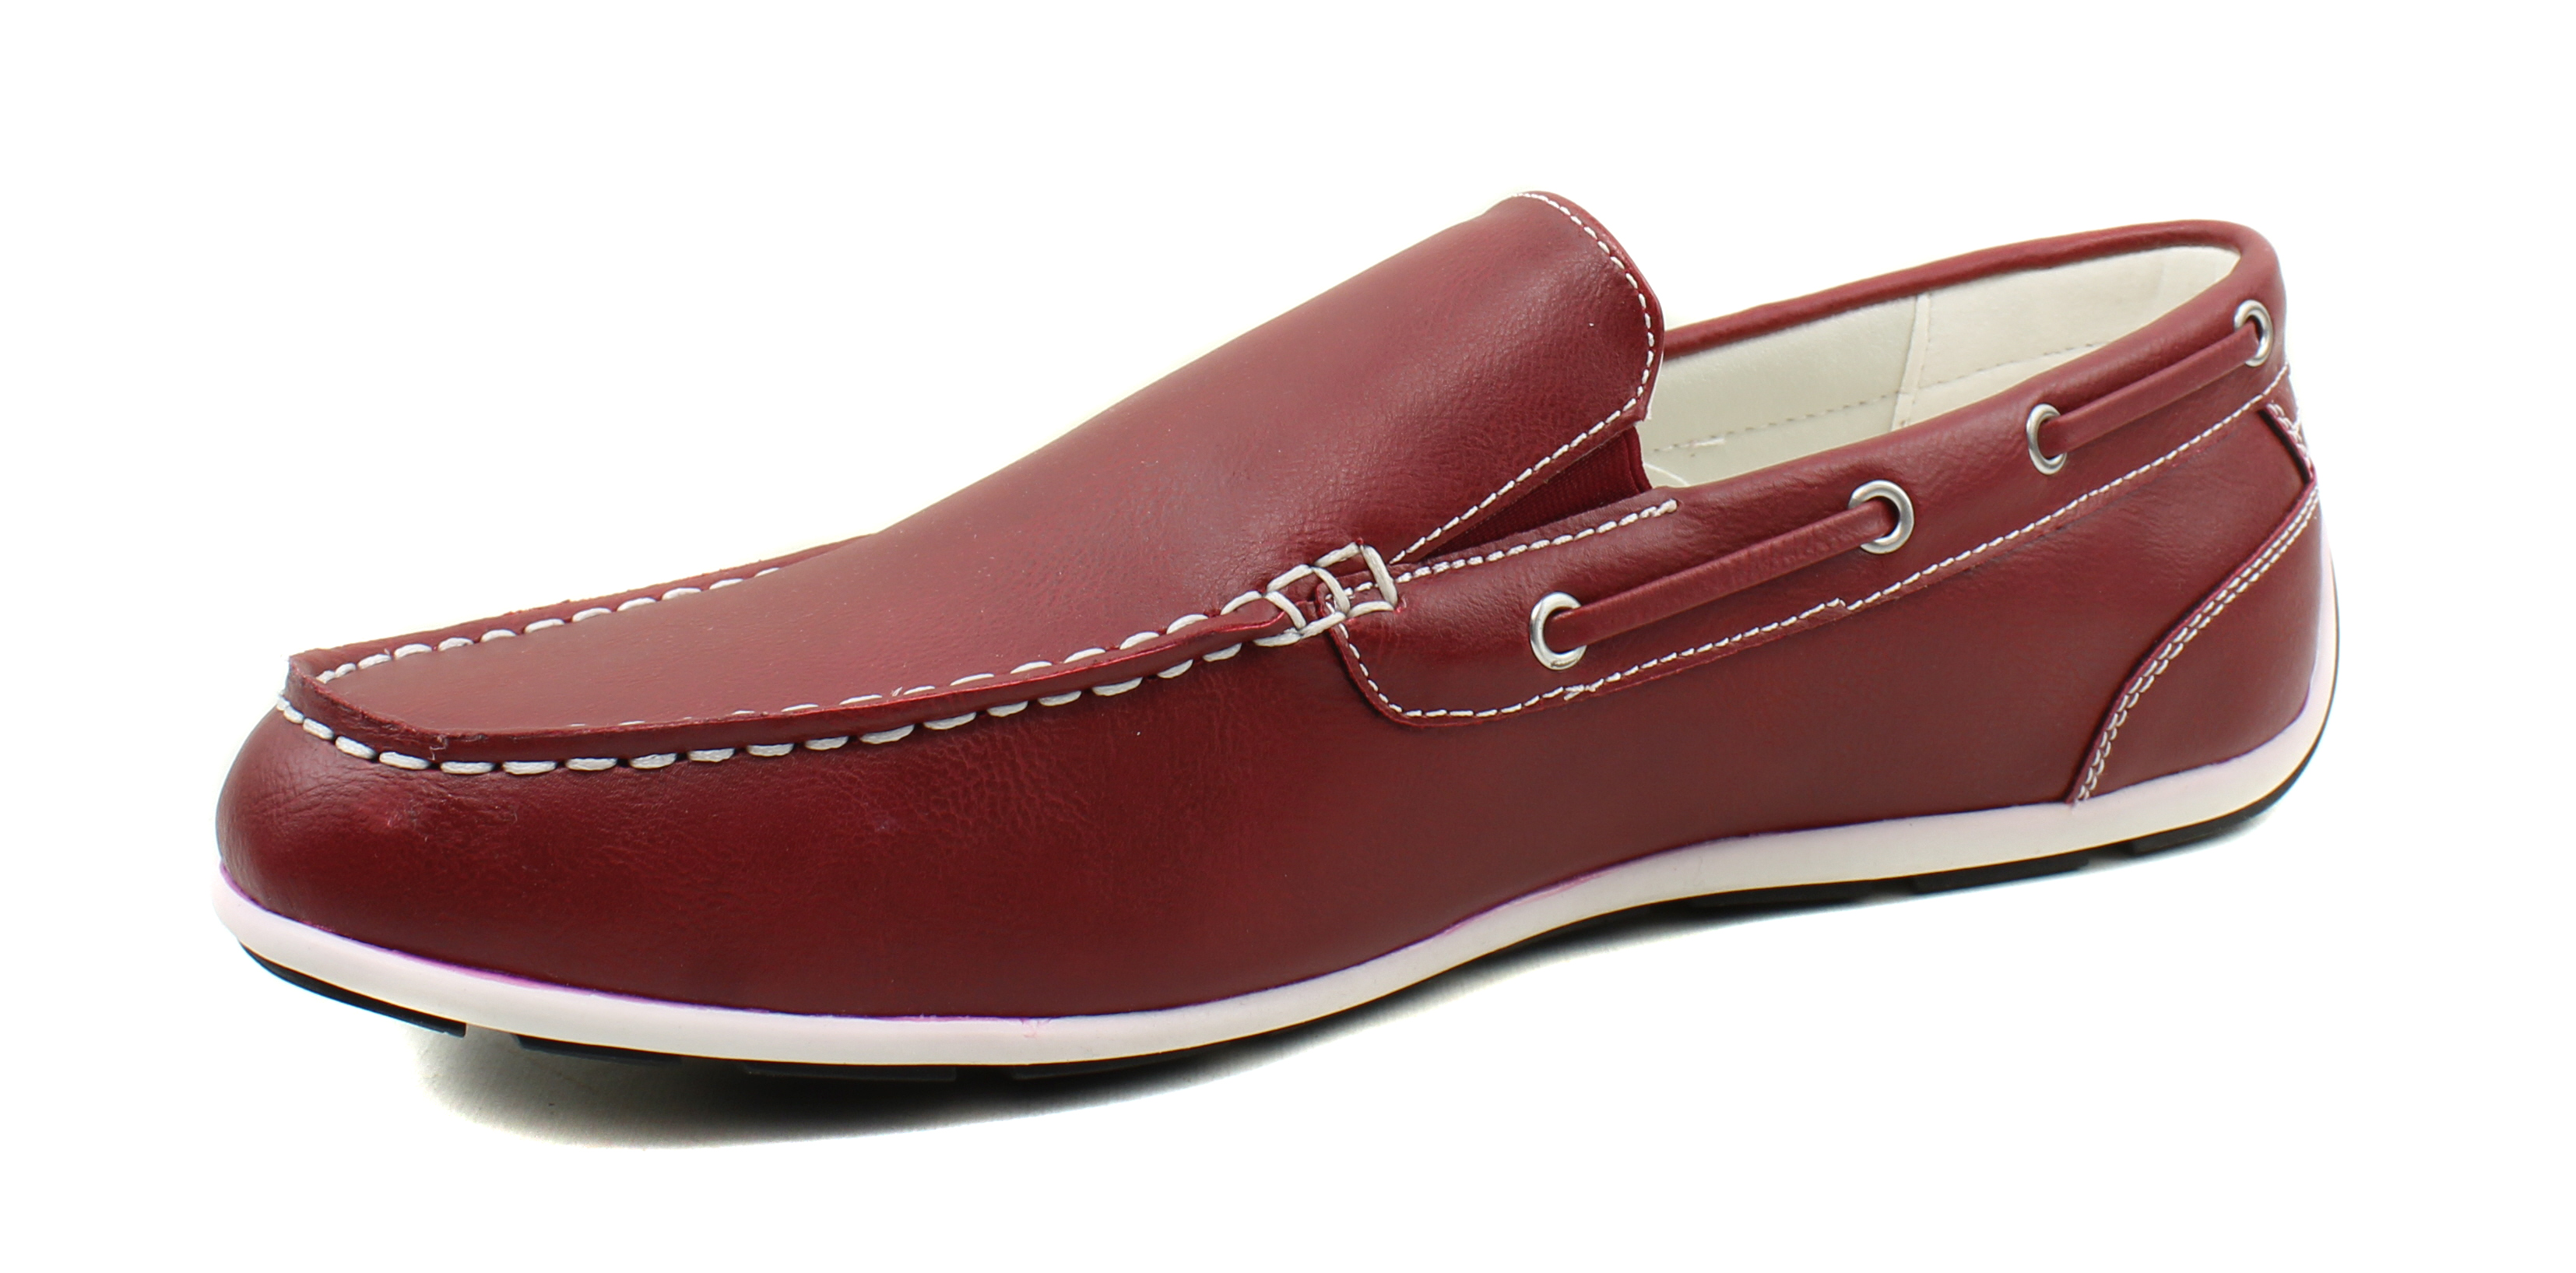 GBX-Mens-Ludlam-Casual-Moc-Toe-Slip-On-Boat-Shoe-Driving-Loafers thumbnail 27